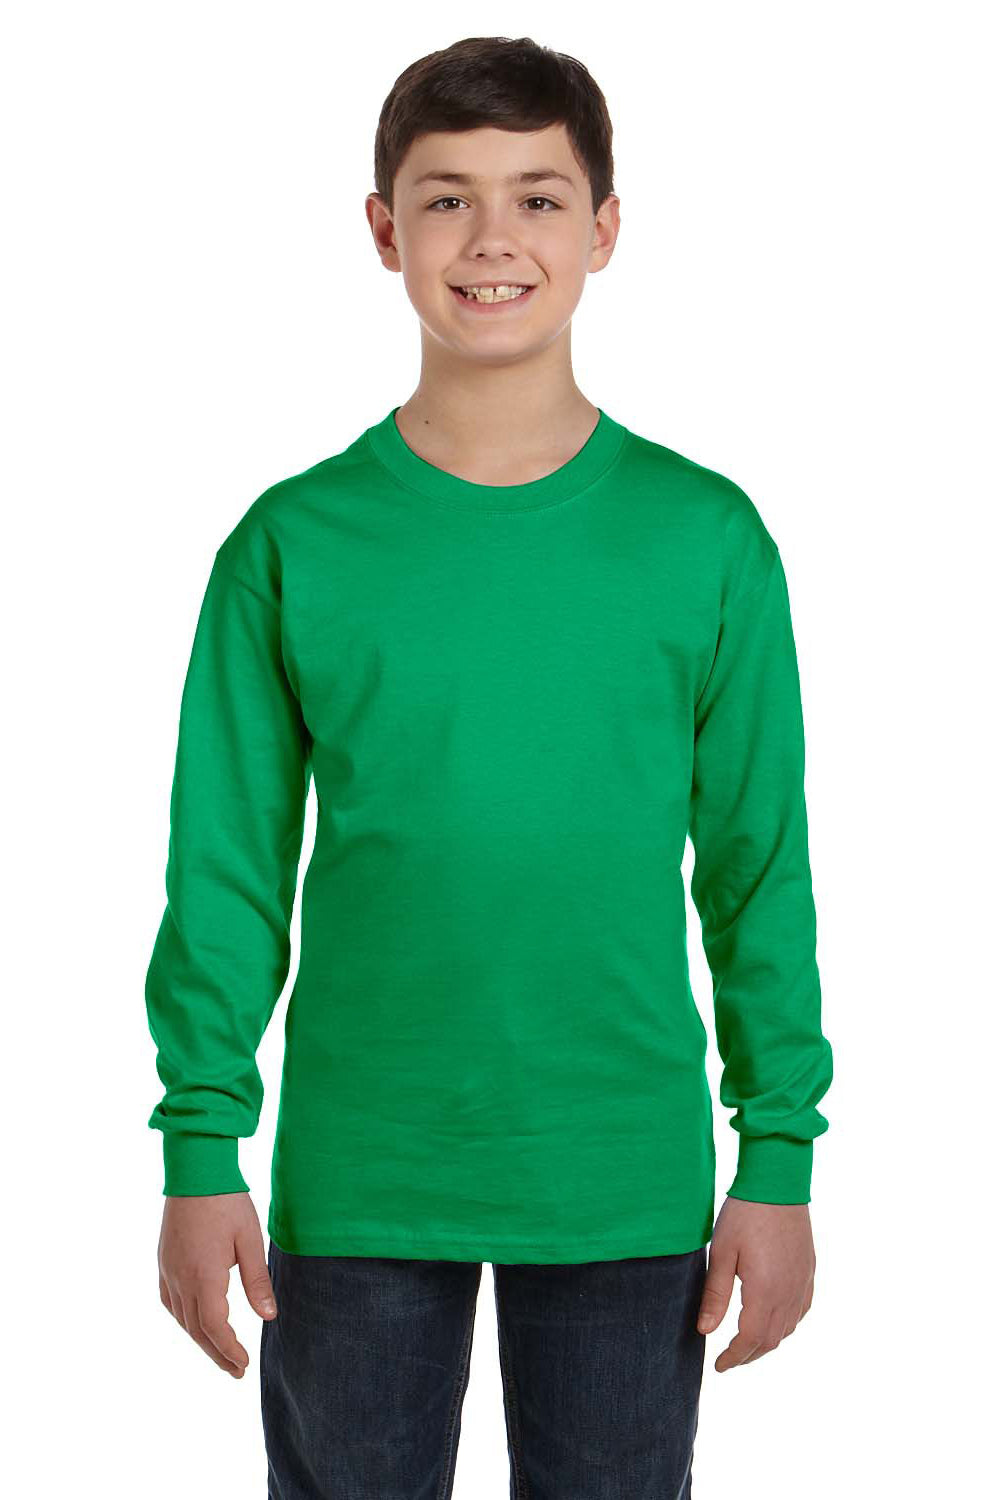 Gildan G540B Youth Long Sleeve Crewneck T-Shirt Irish Green Front